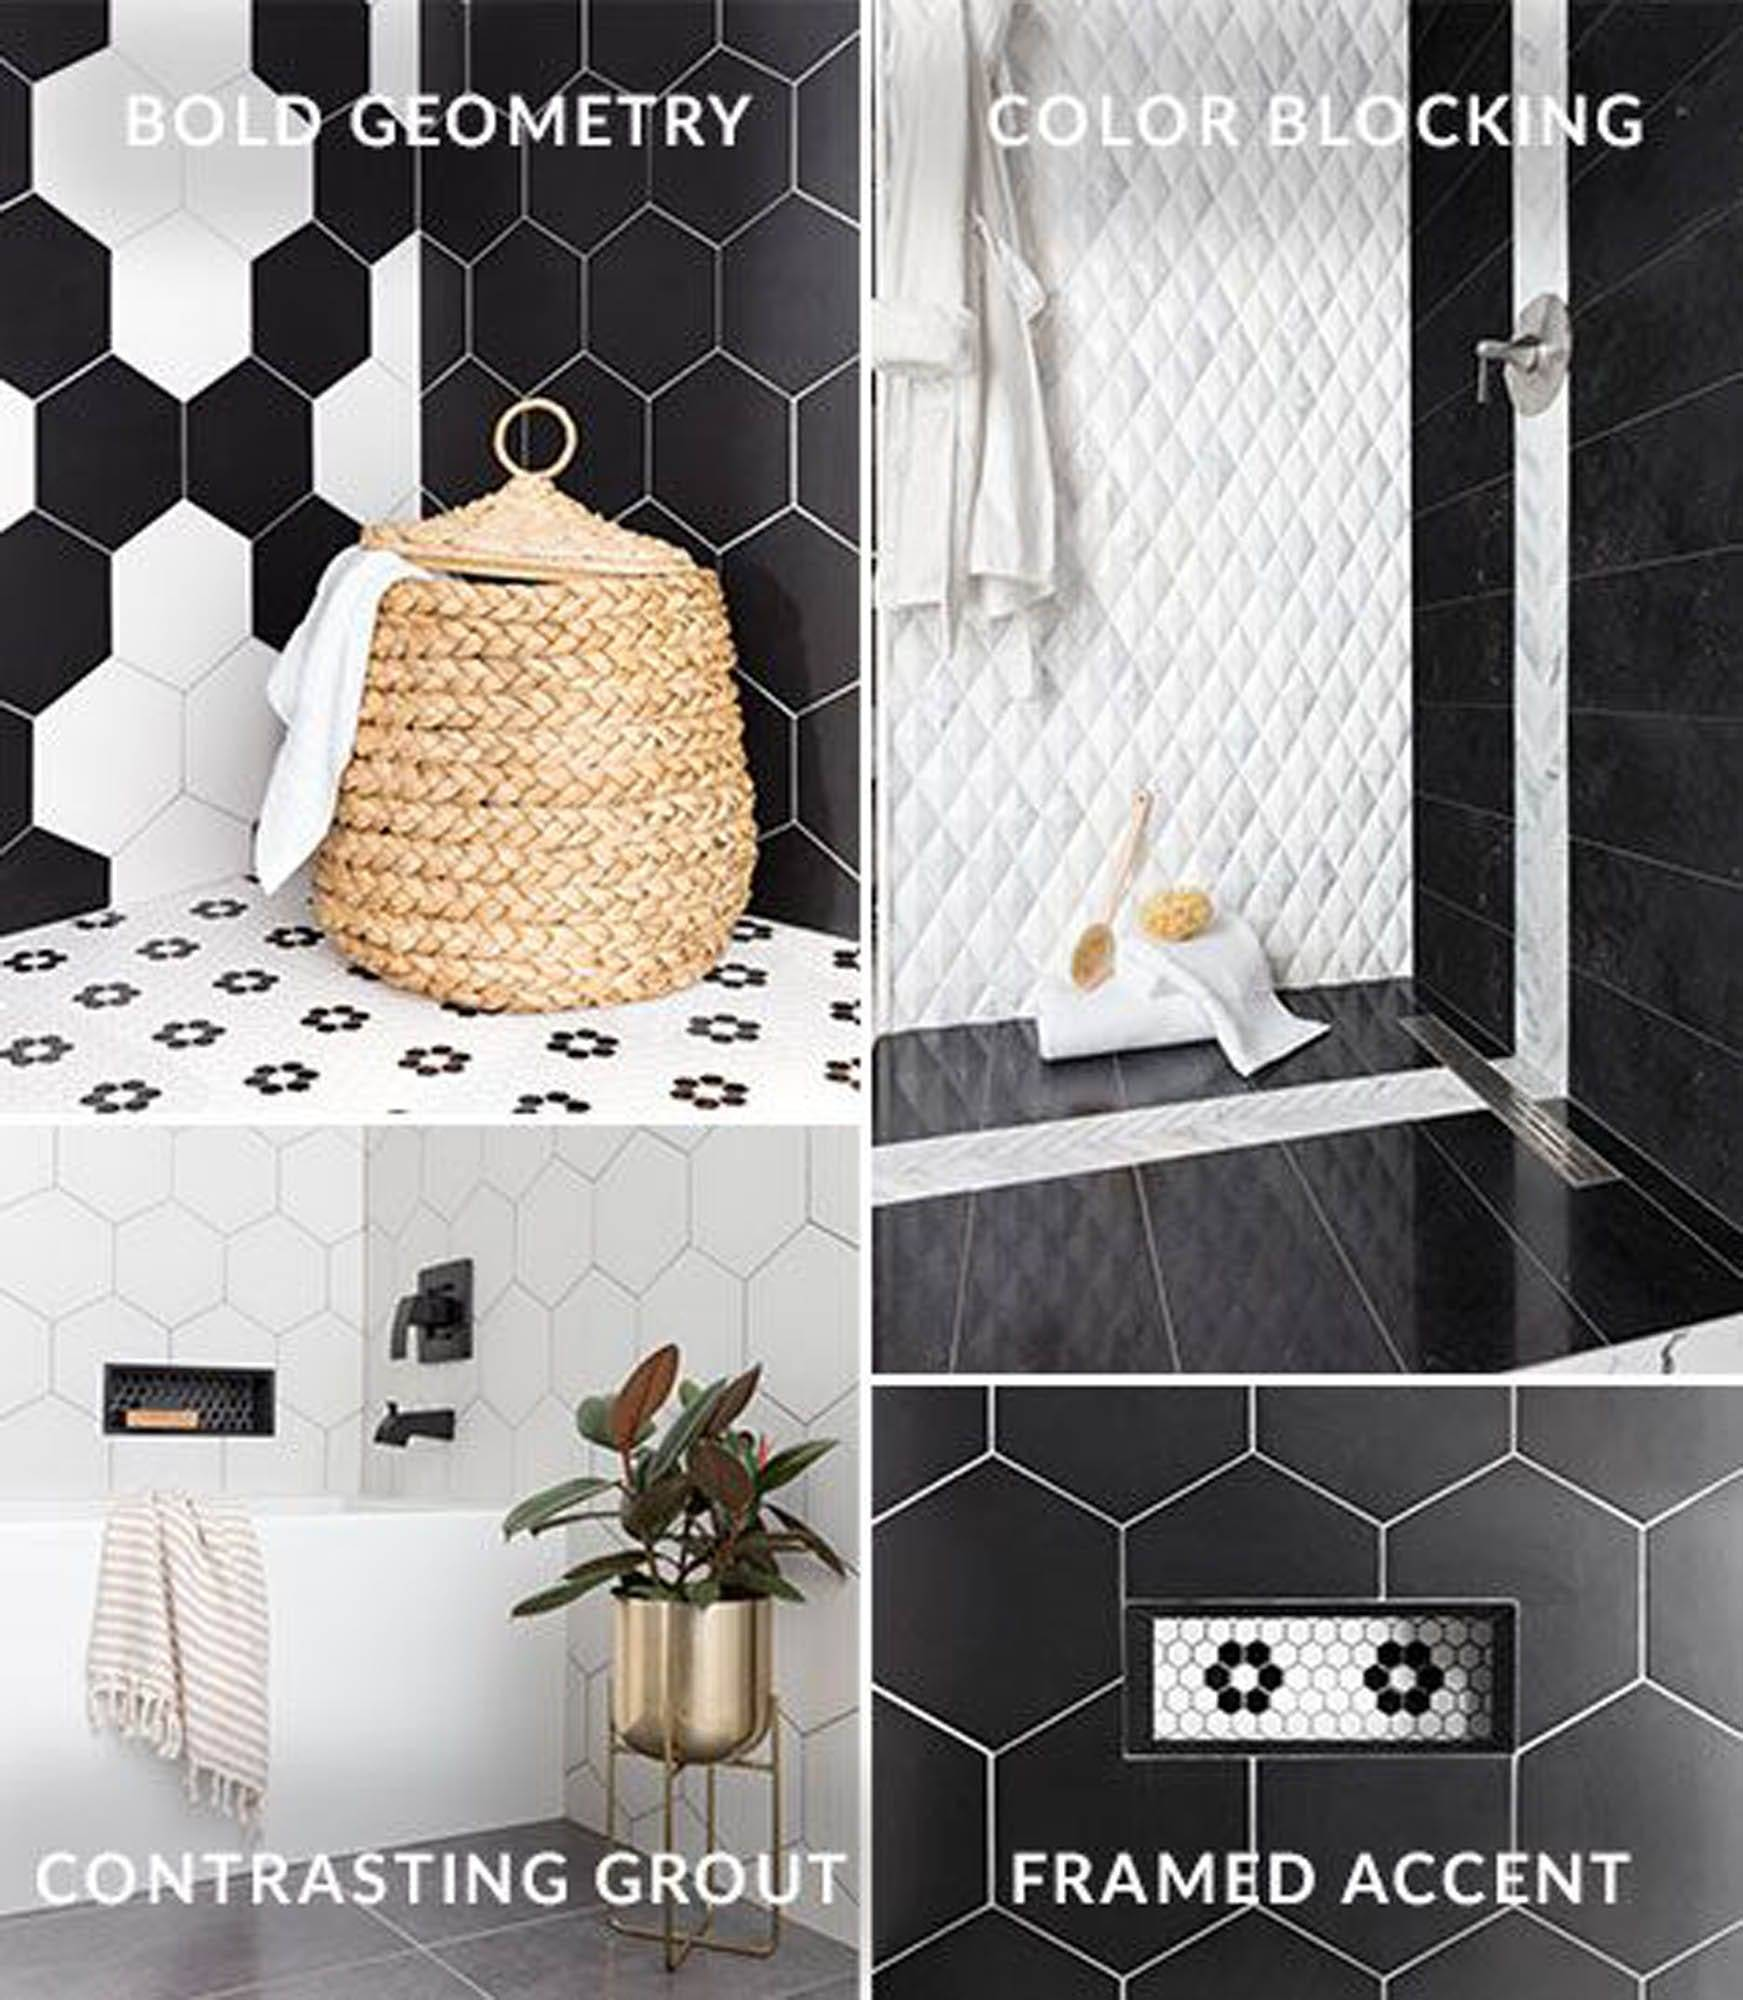 4 ways to tile with black and white.